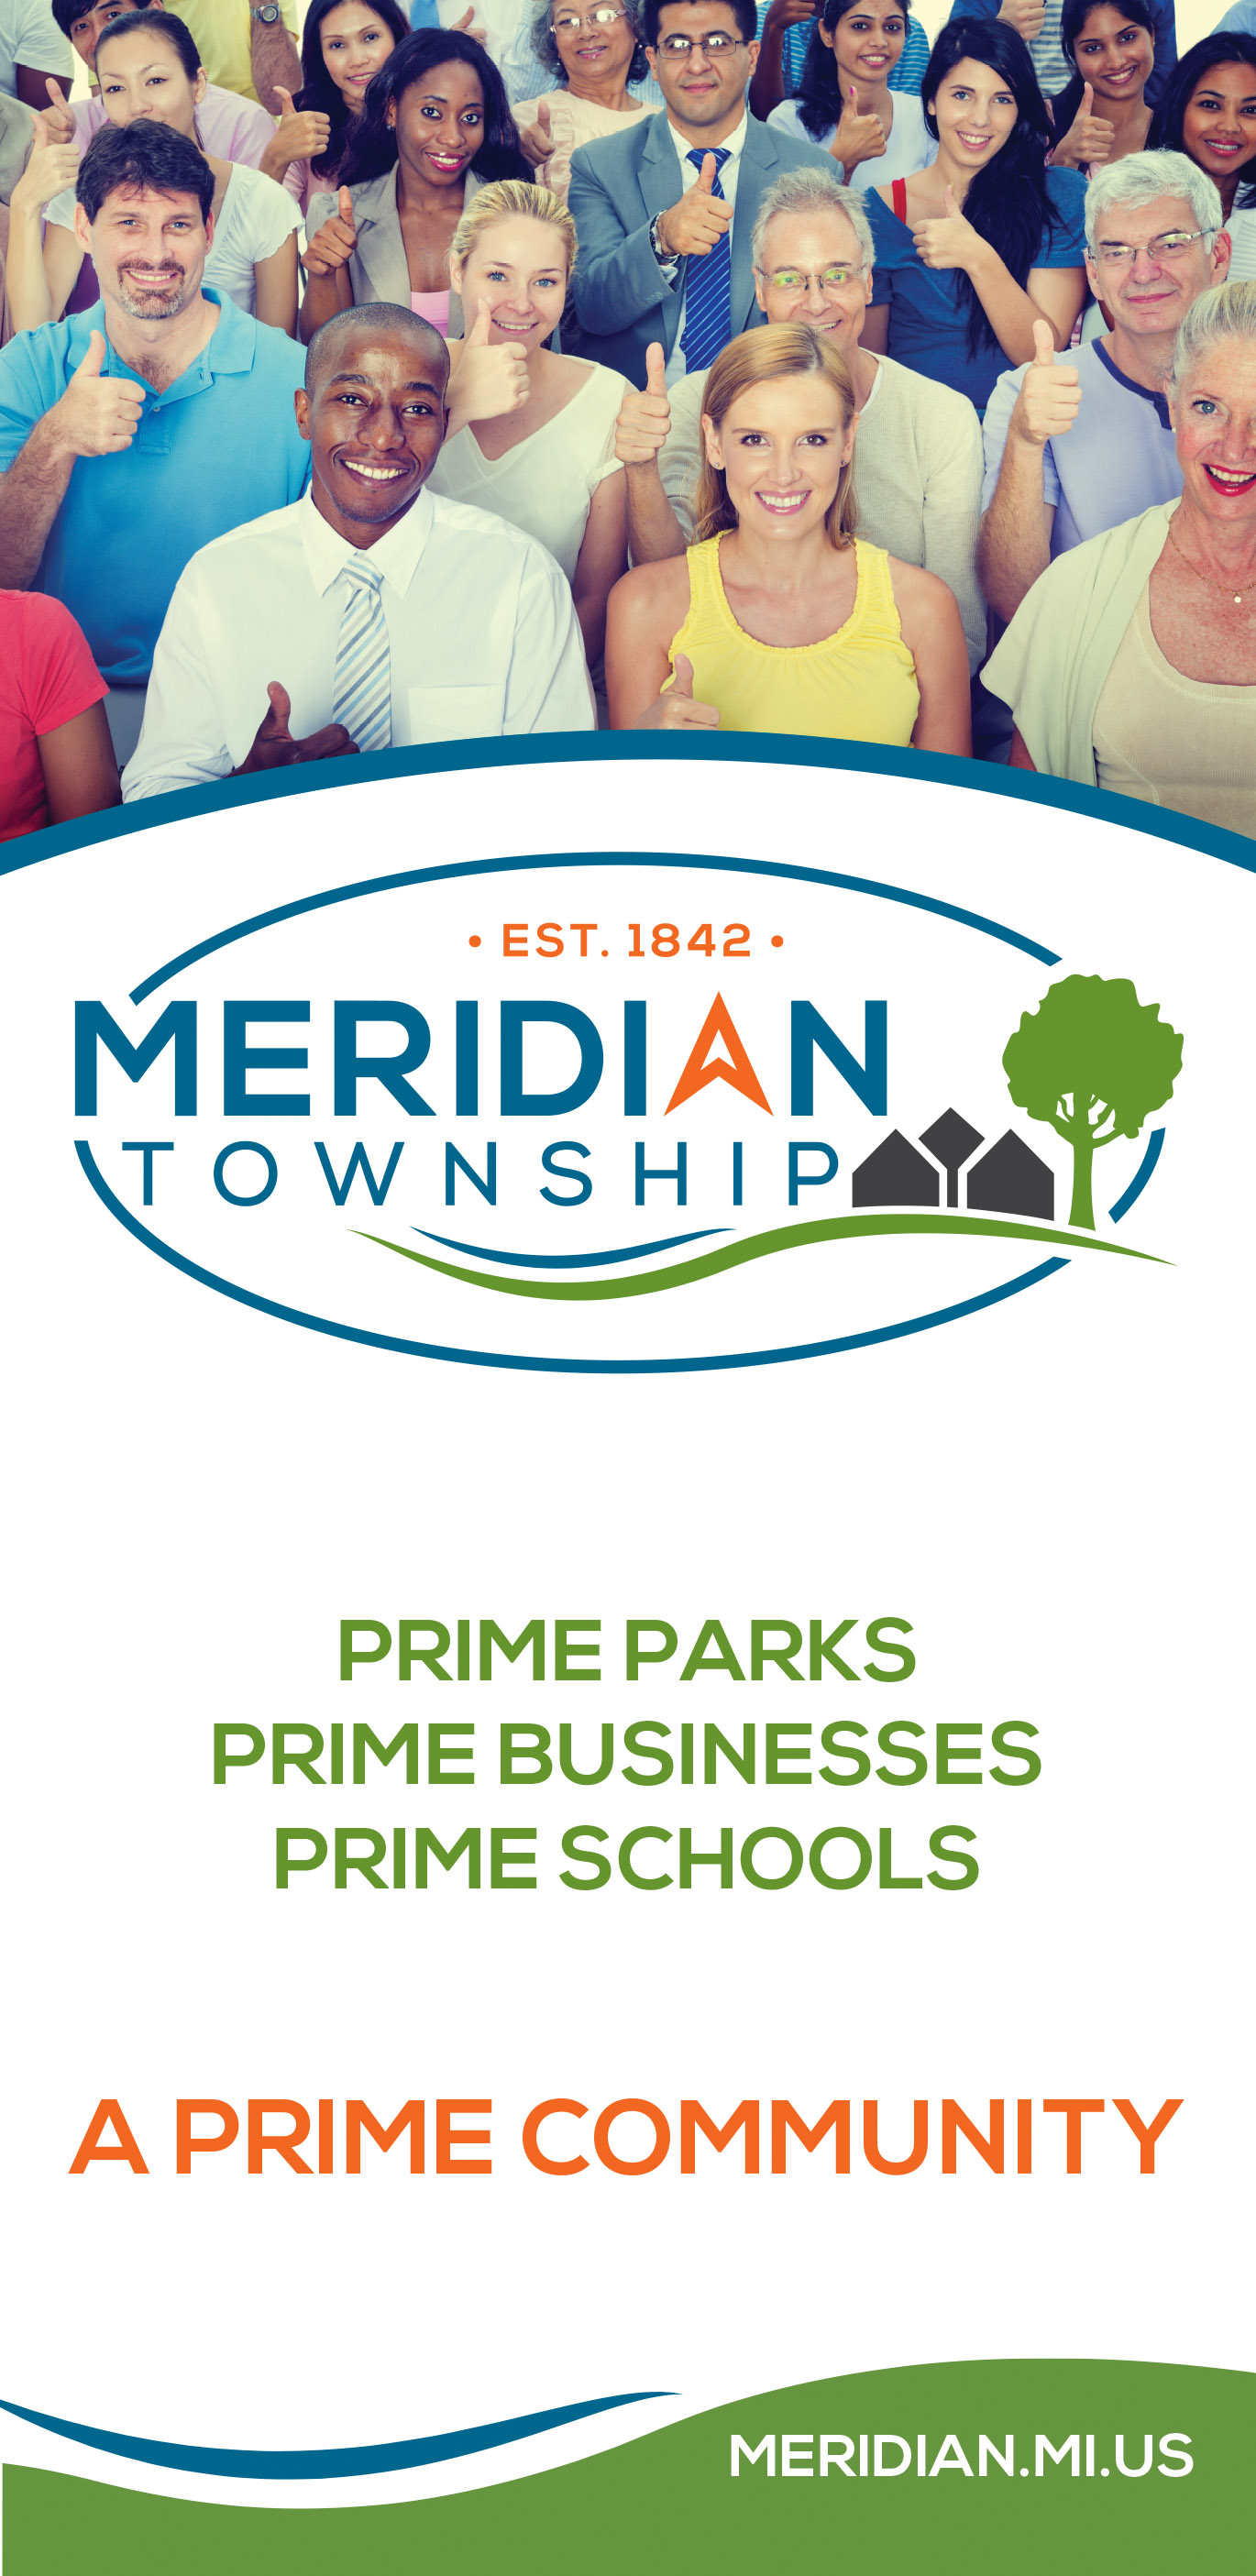 Career Opportunities at Meridian Township Prime Parks, Prime Businesses, Prime Schools